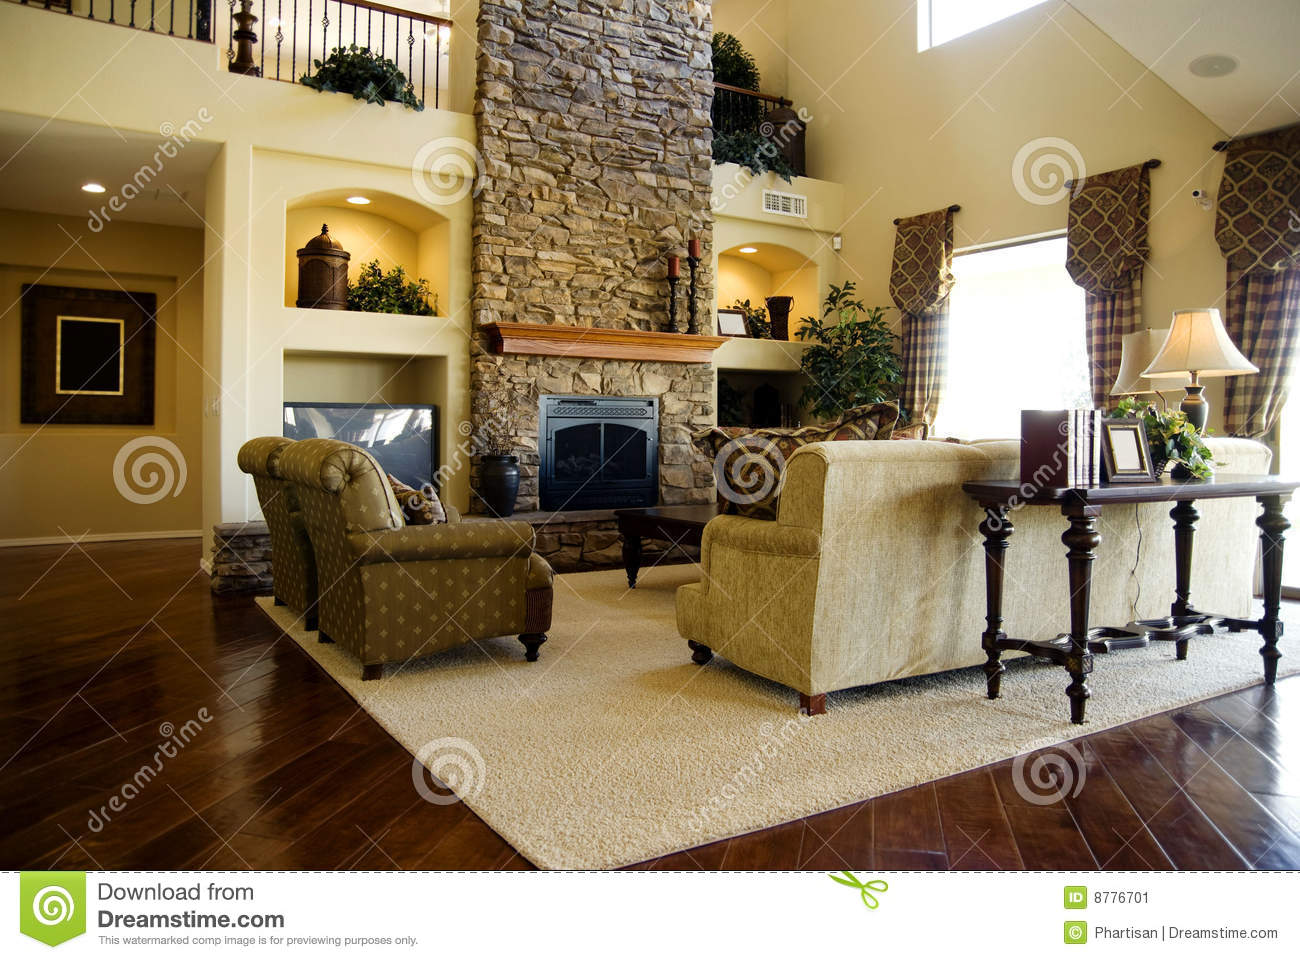 Hard Wood Flooring In Living Room Area Stock Image - Image of ...